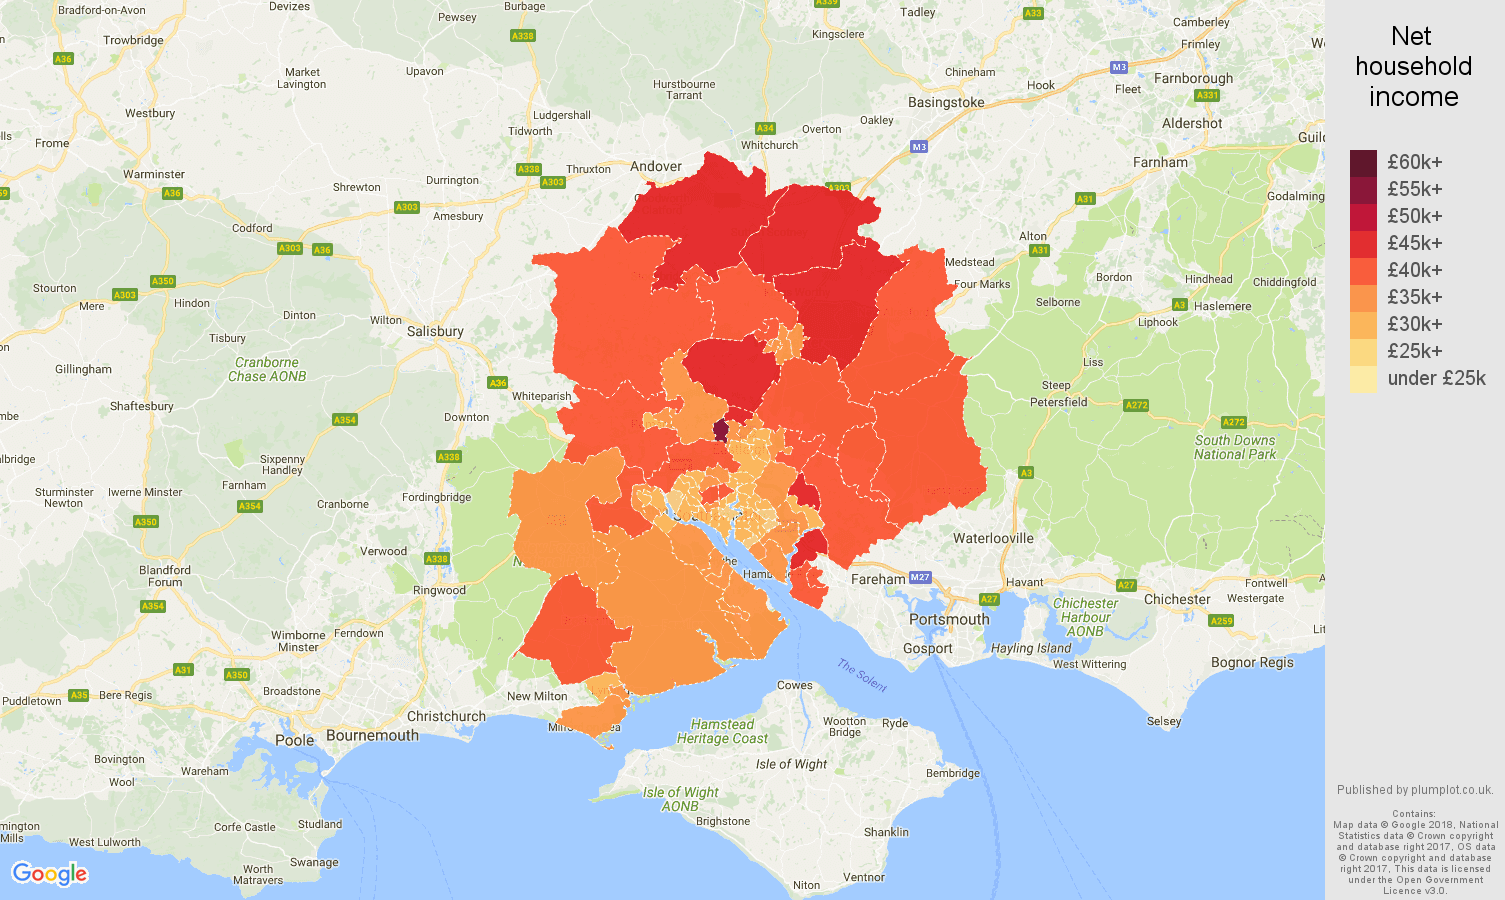 Southampton net household income map